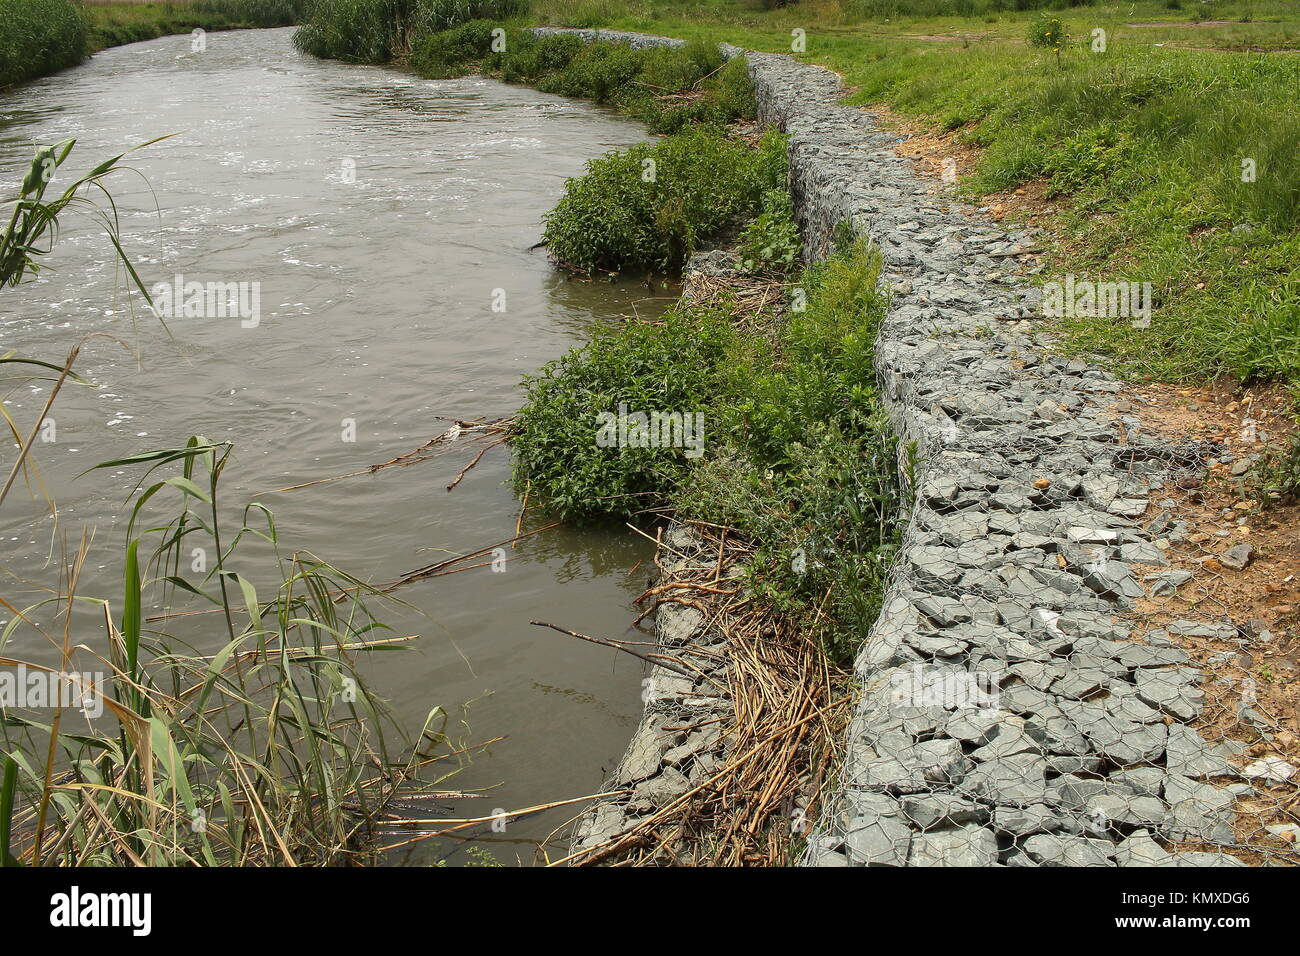 Gabion, cages filled with rocks that are used in erosion control, civil engineering and landscaping image in landscape - Stock Image